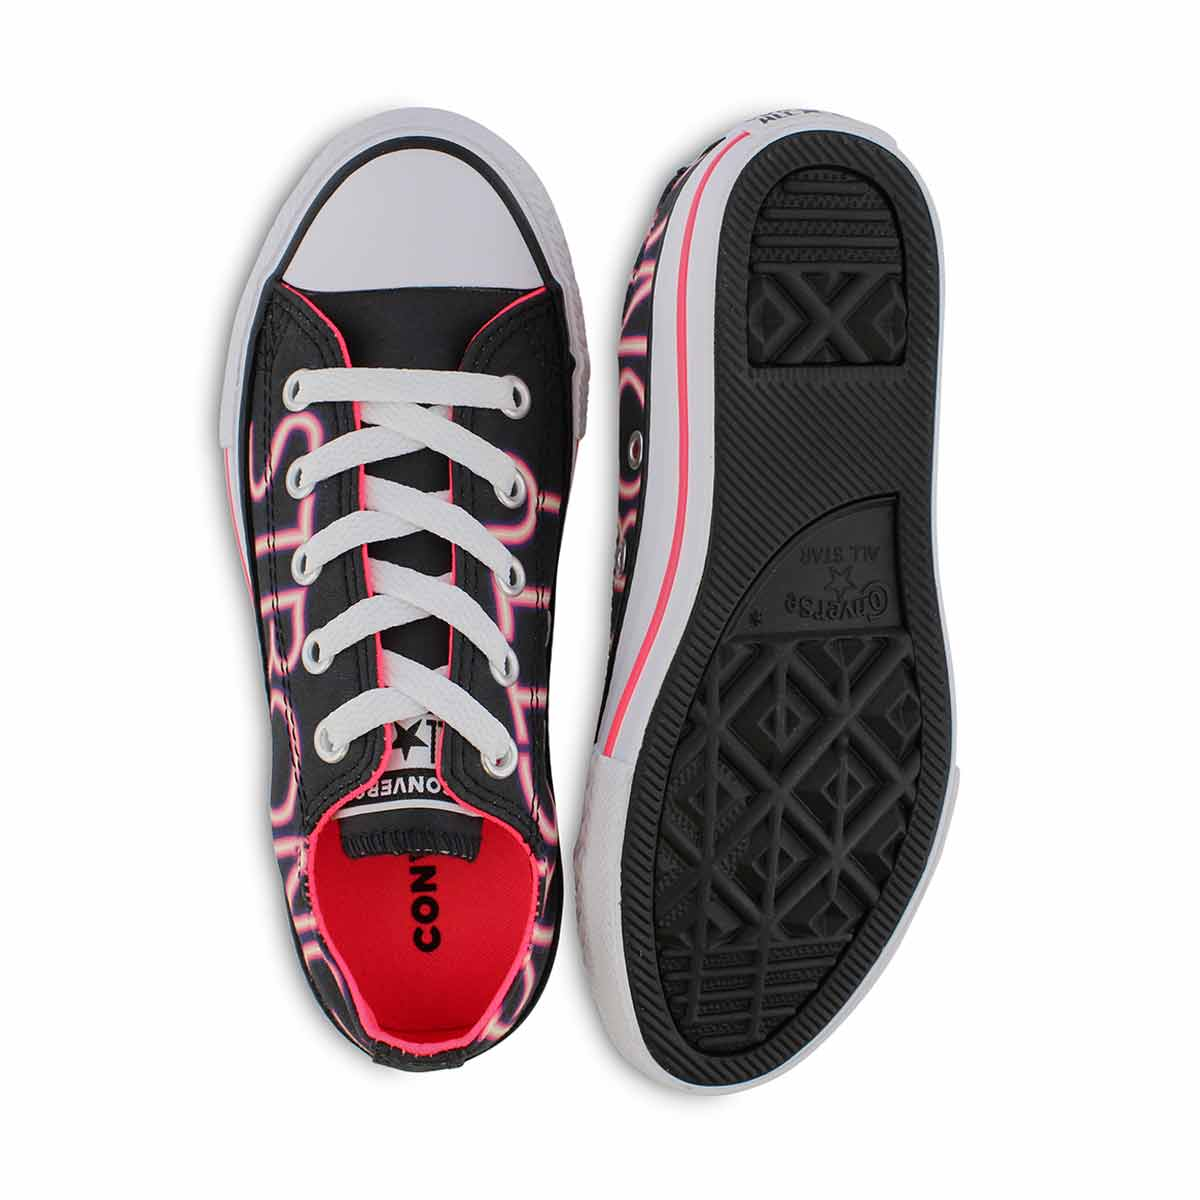 Grls CTAS Girl Power blk/pnk sneaker